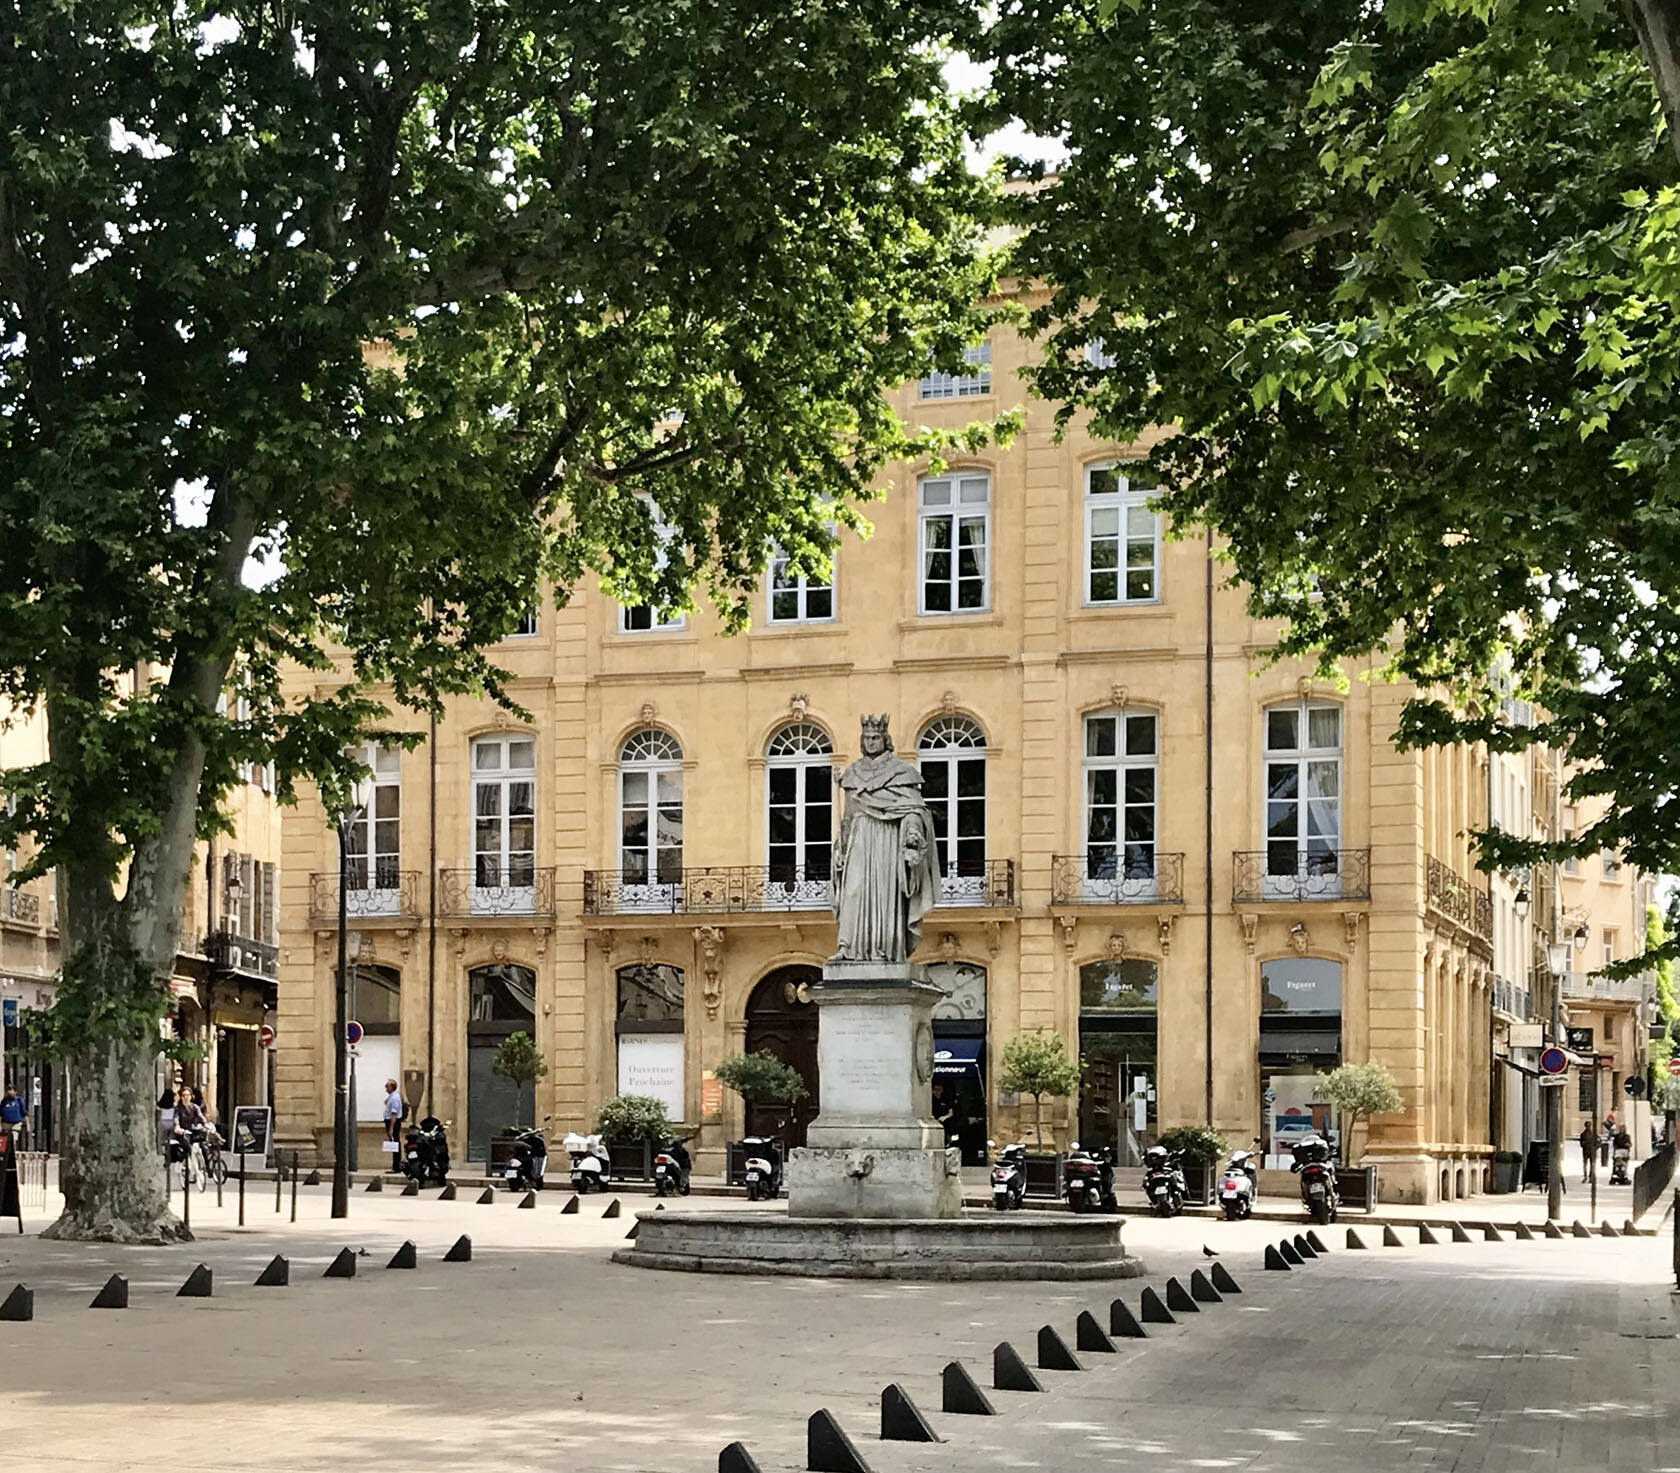 King Rene at the top of the Cours Mirabeau